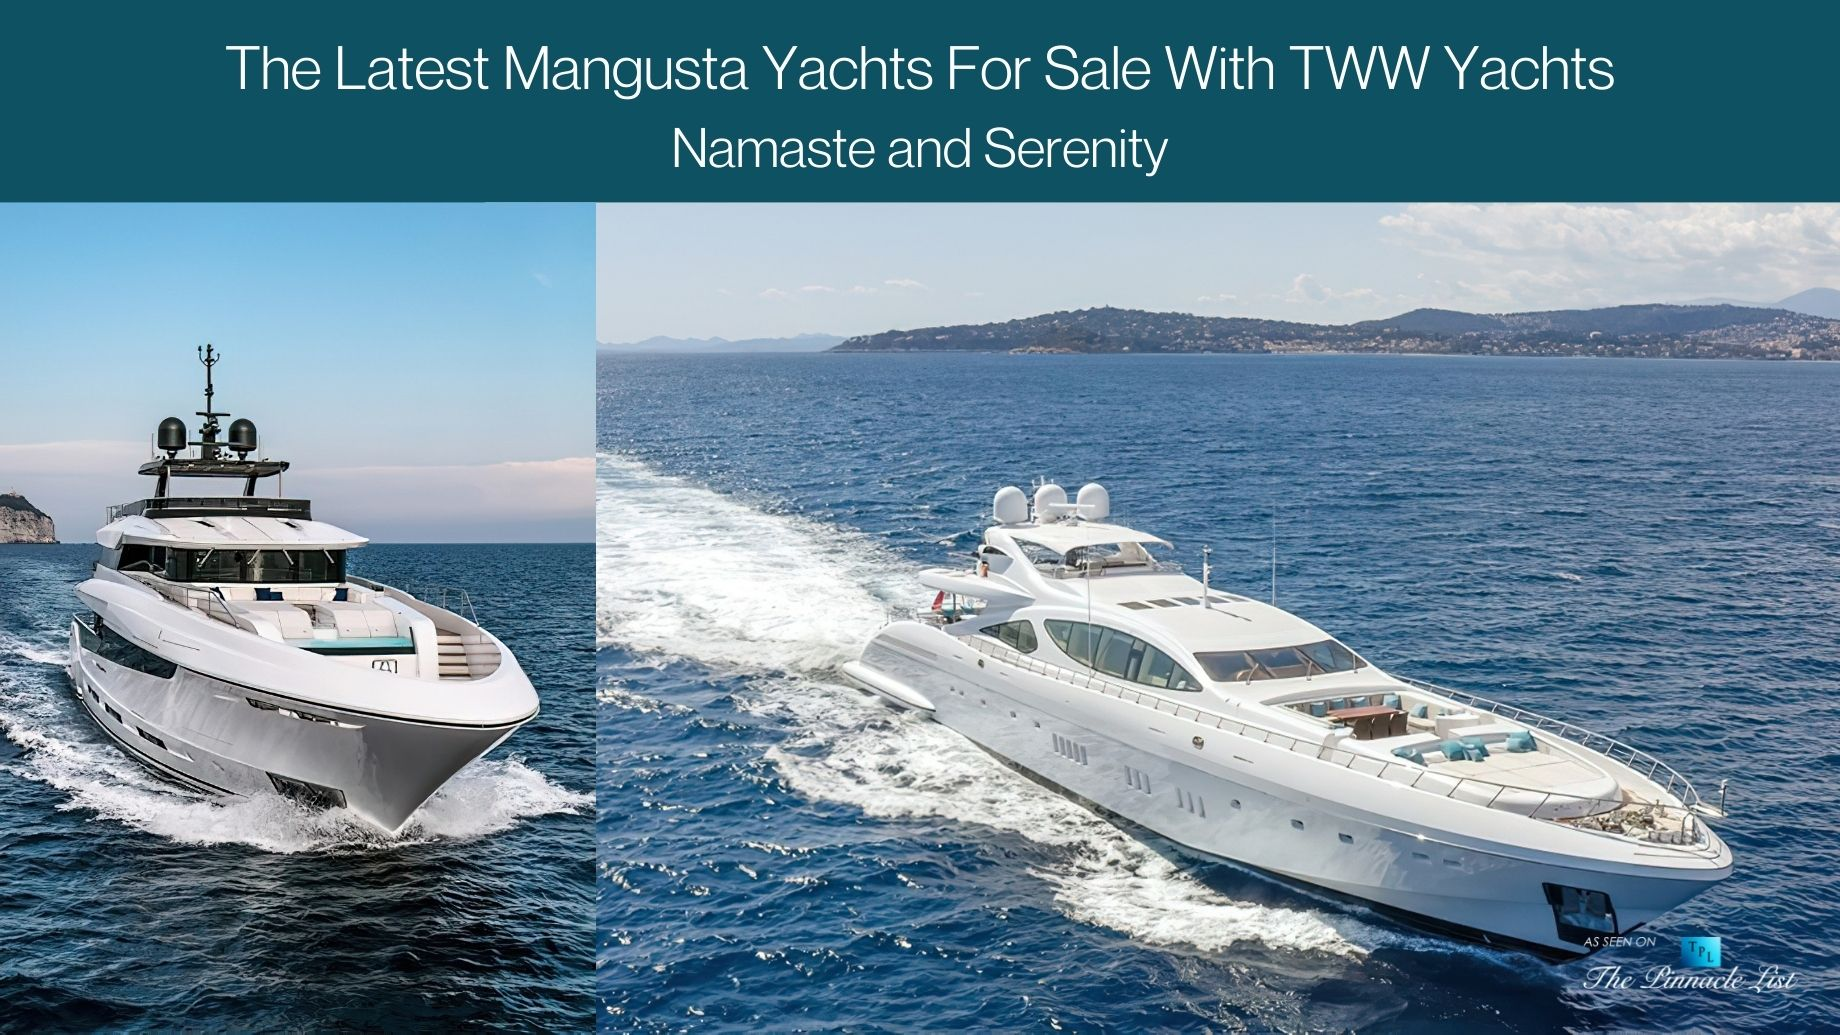 The Latest Mangusta Yachts For Sale With TWW Yachts – Namaste and Serenity